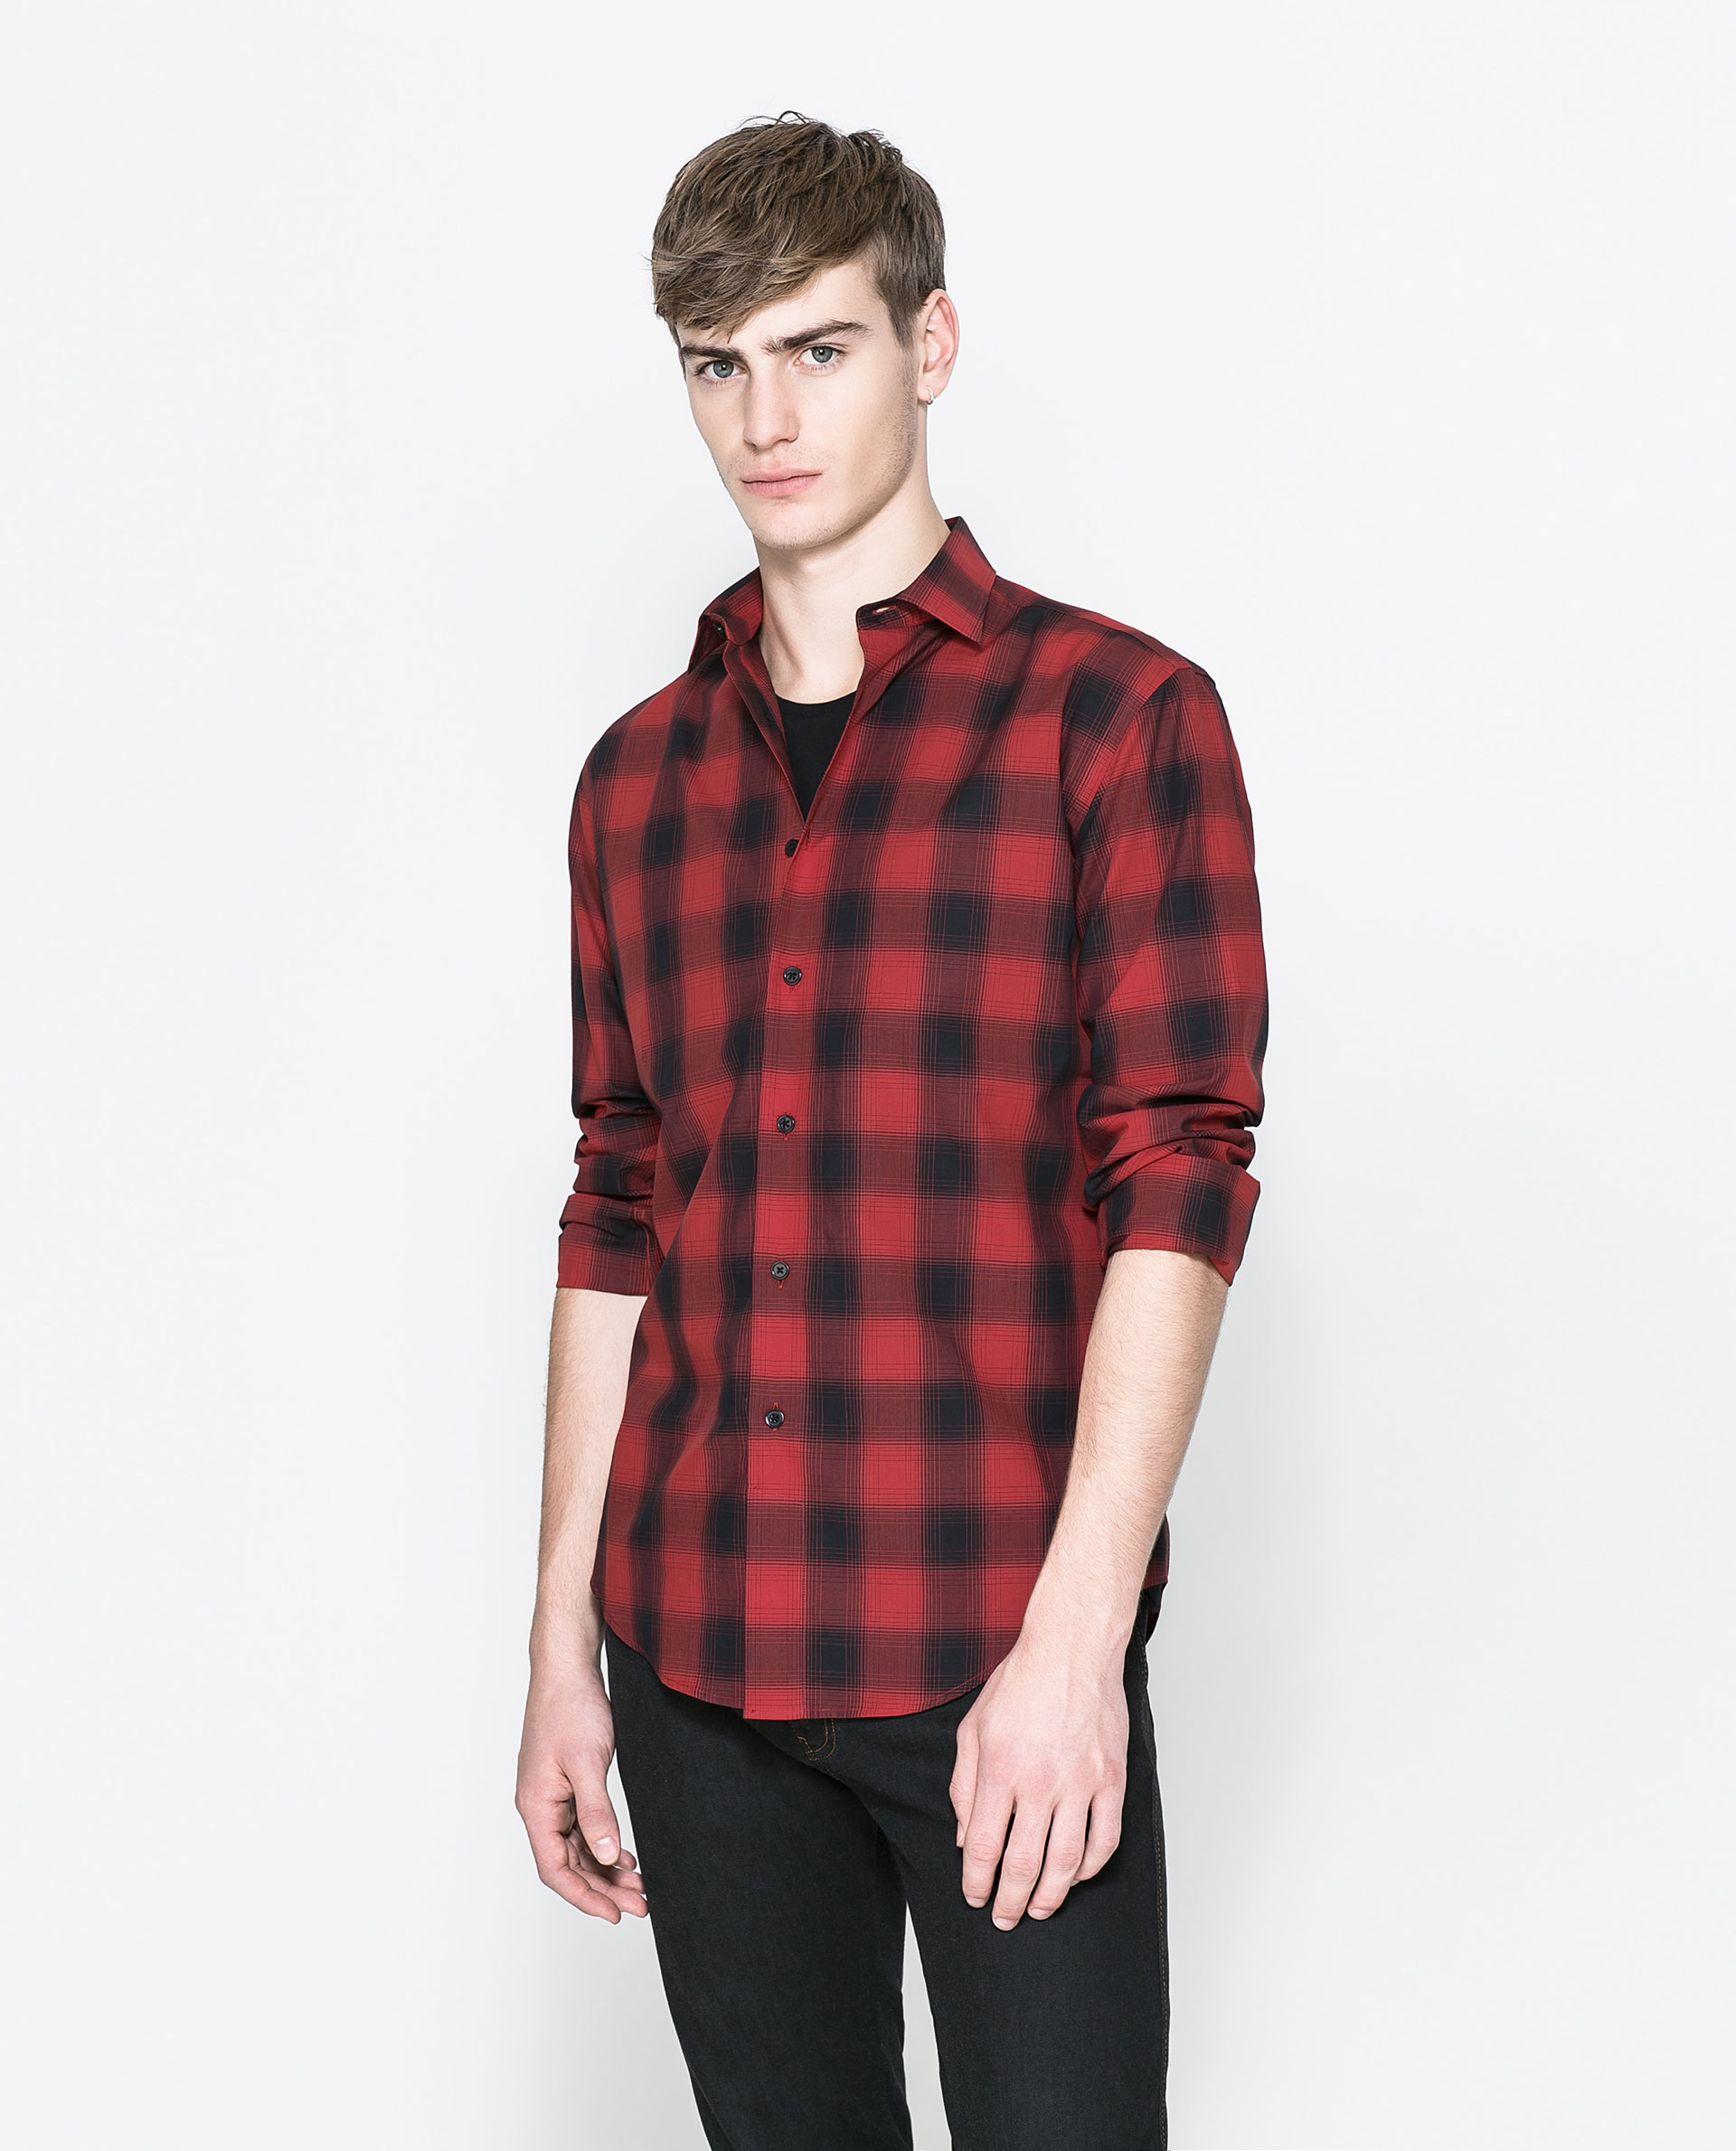 Shop for a checked shirt at abpclan.gq Next day delivery and free returns available. s of products online. Browse plaid and check shirts for men online!